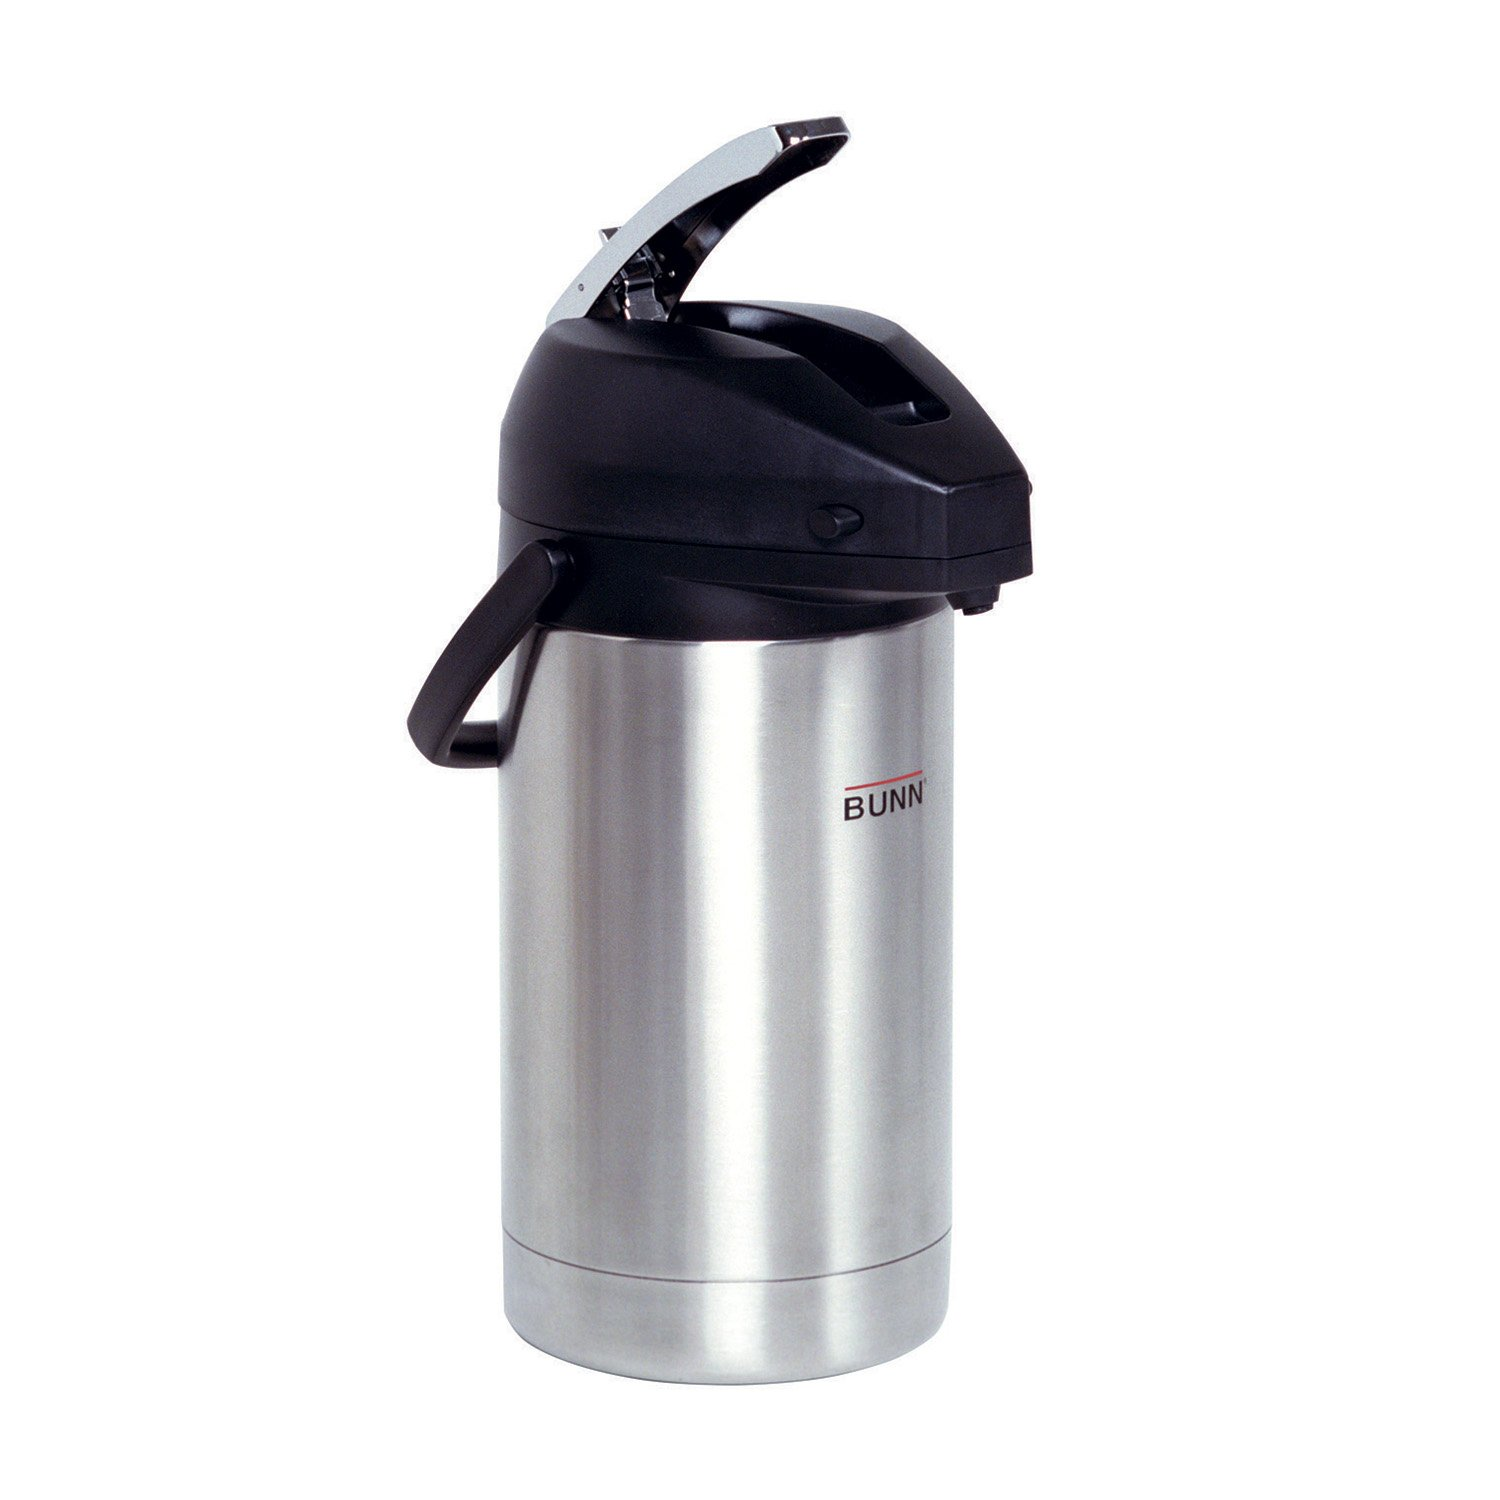 BUNN32130.0000 3.0-Liter Lever-Action Airpot, Stainless Steel